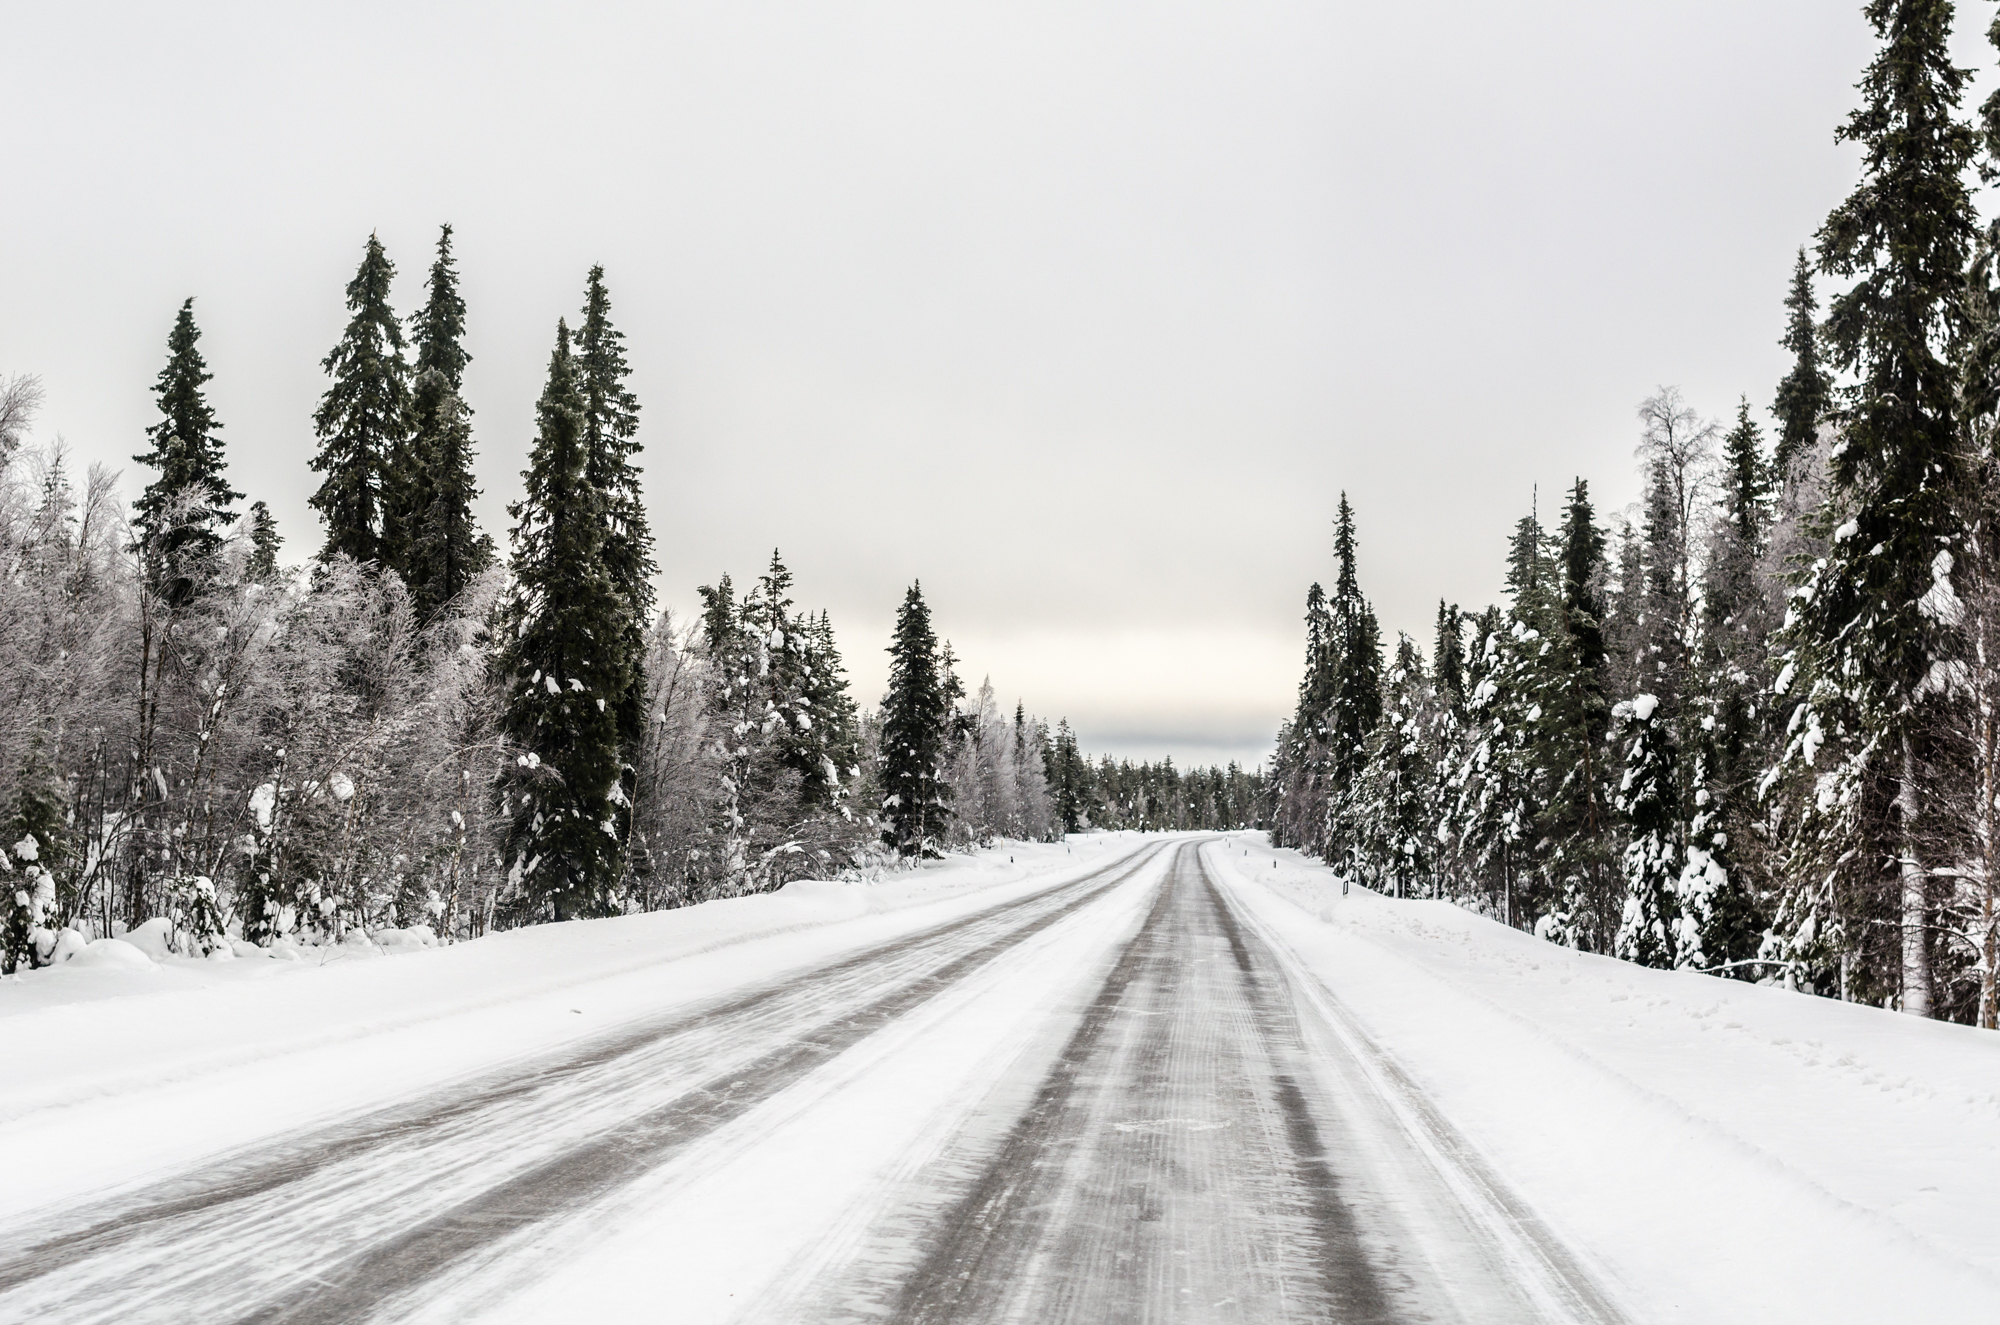 Finland & Norway Winter Road Trip.